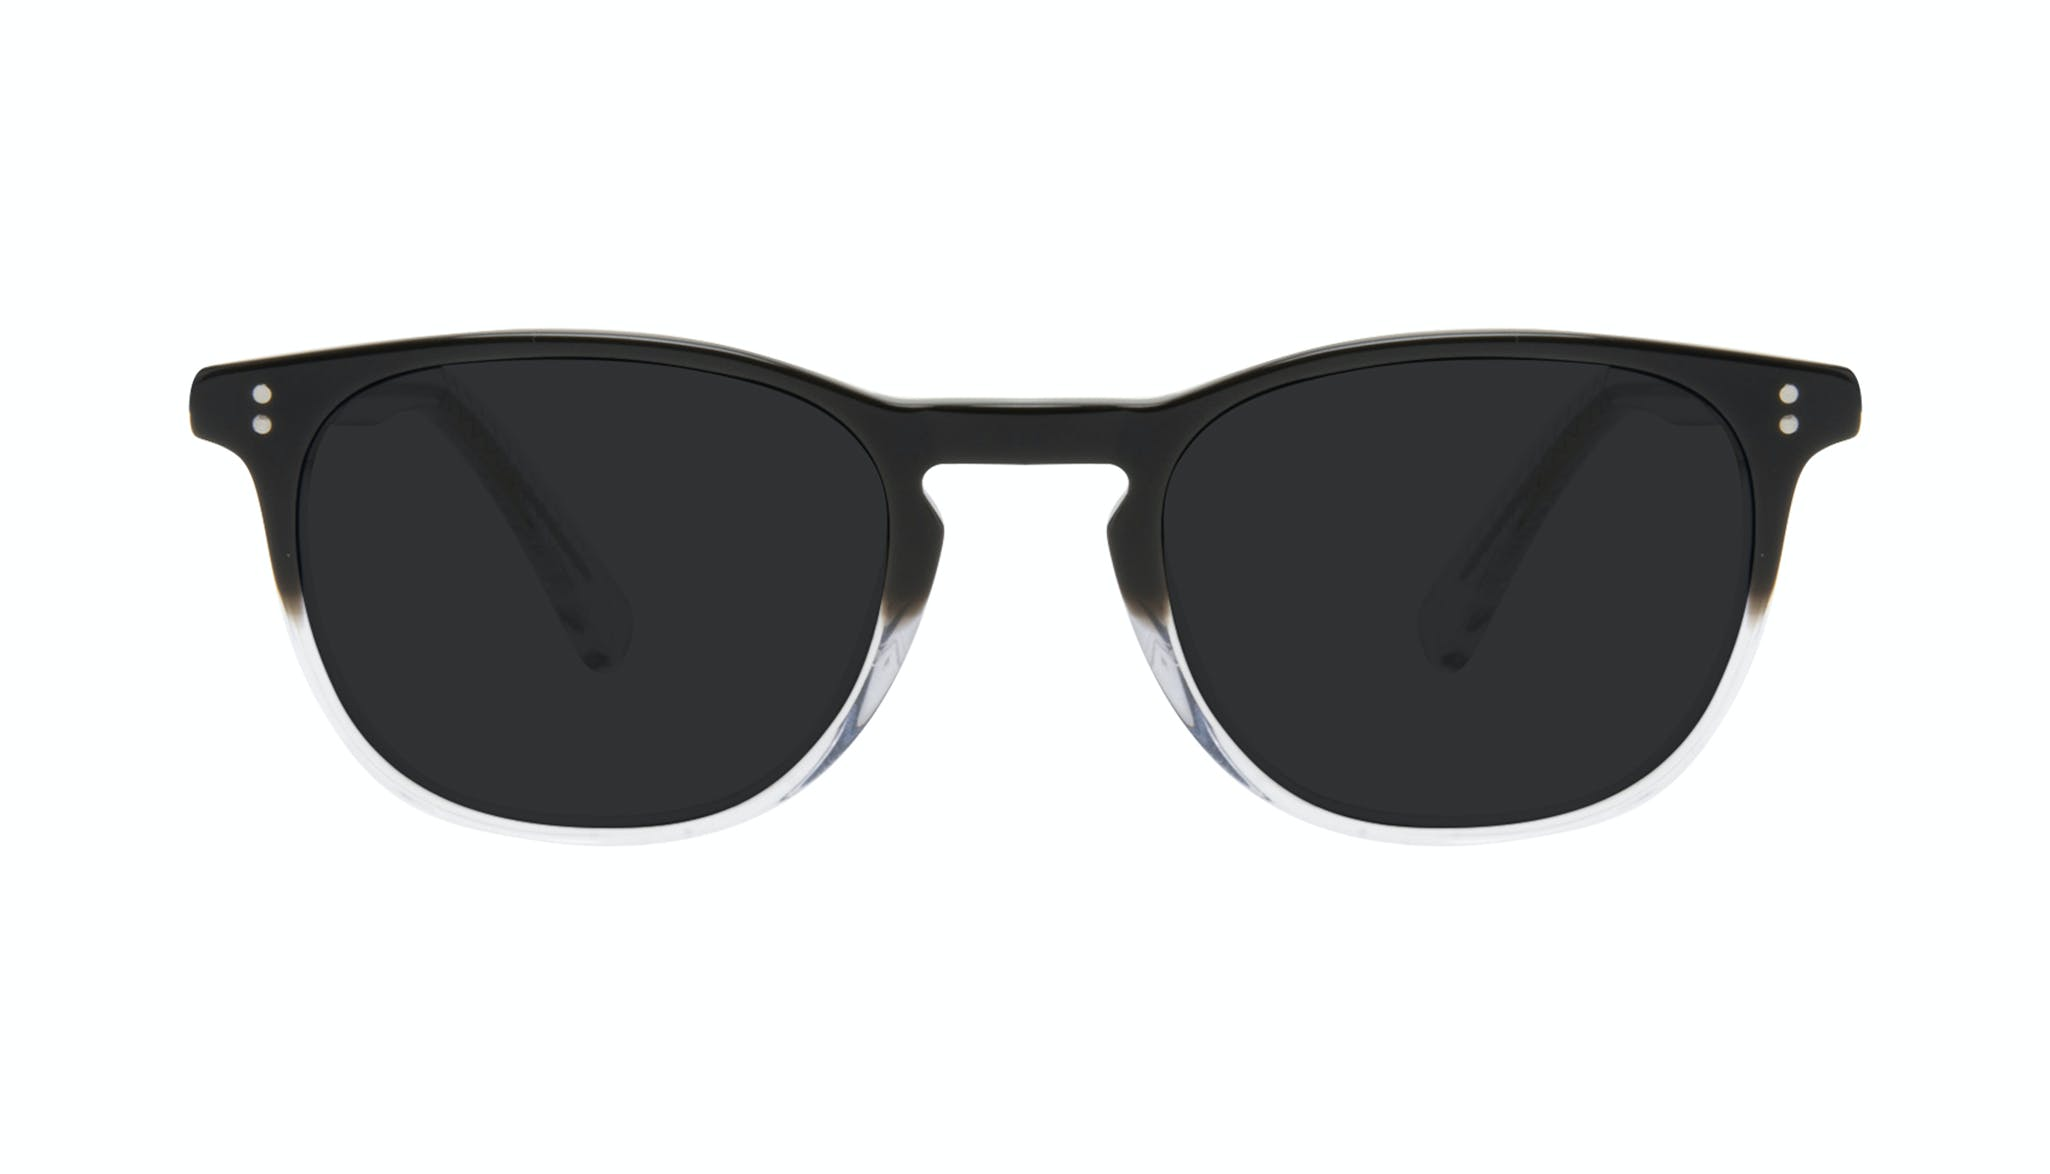 Affordable Fashion Glasses Round Sunglasses Men Trooper Onyx Clear Front